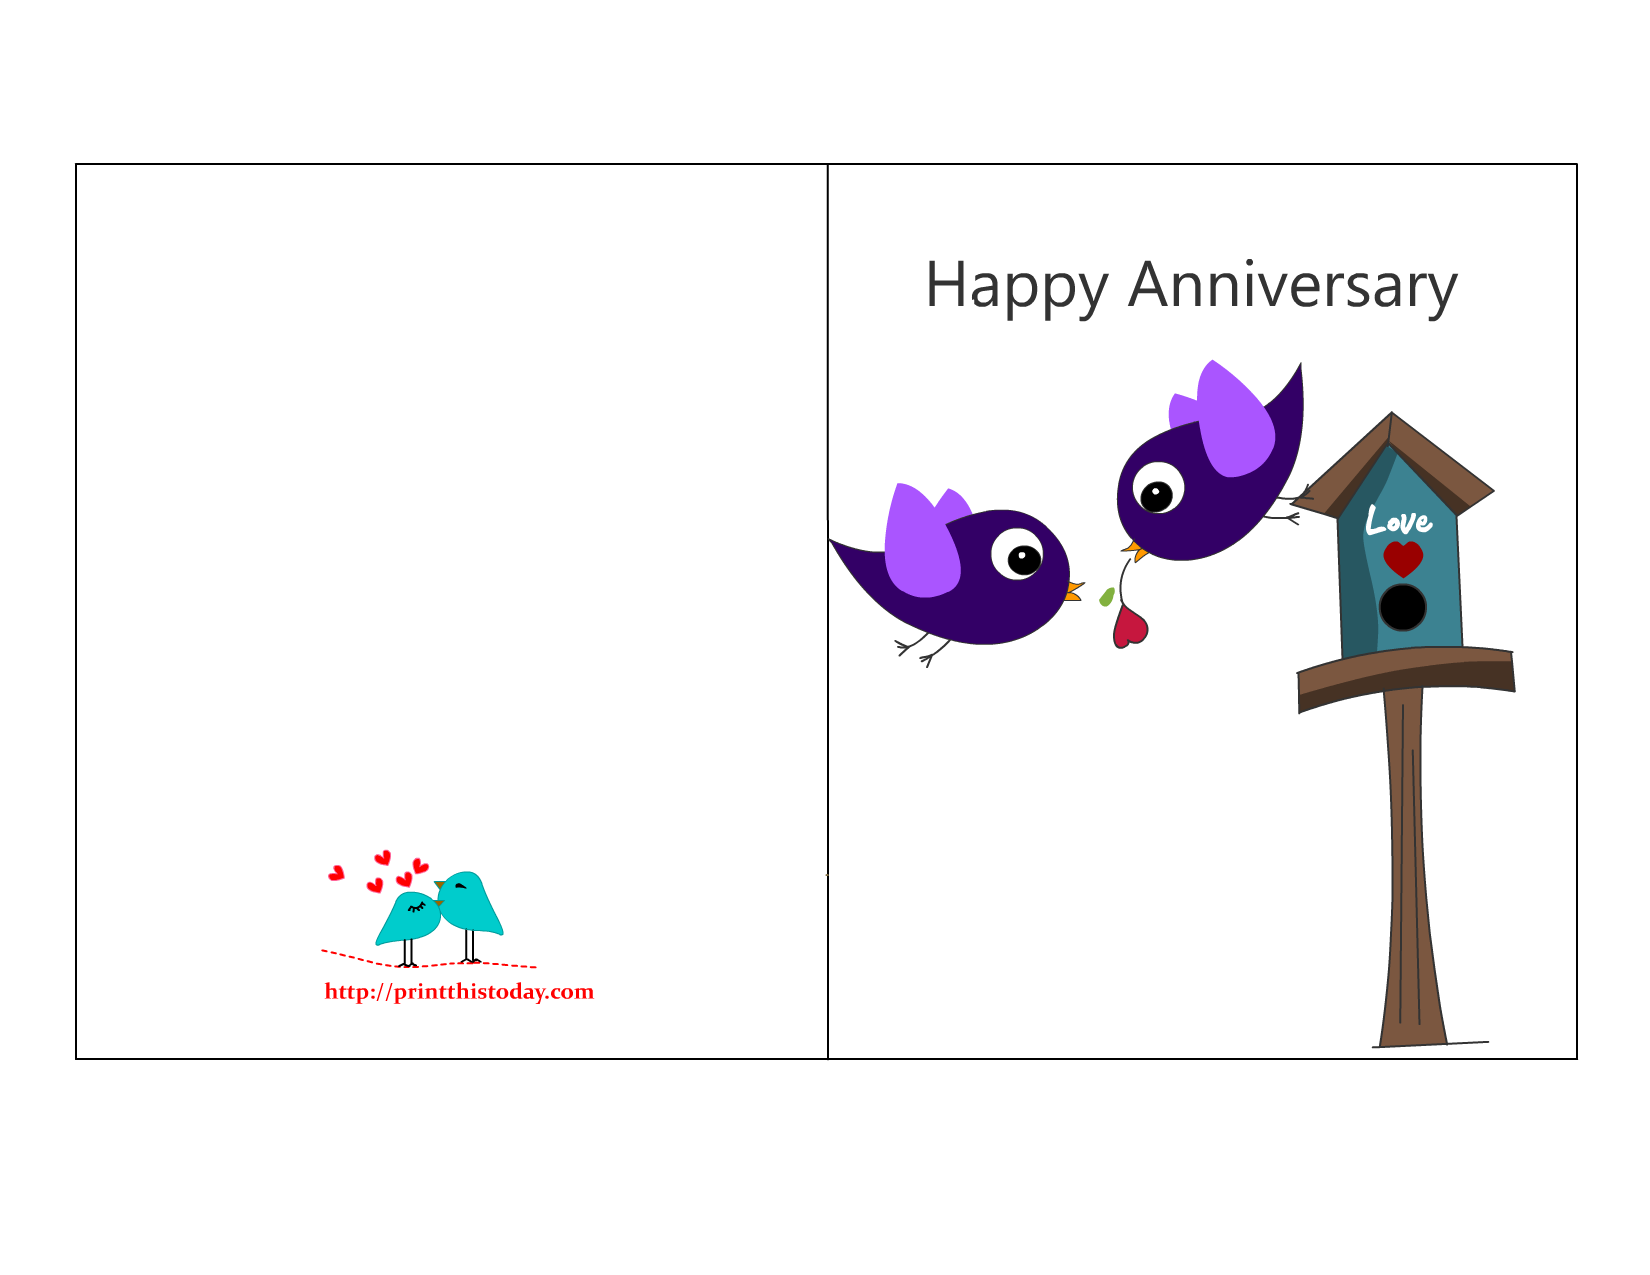 Happy anniversary images free cliparts